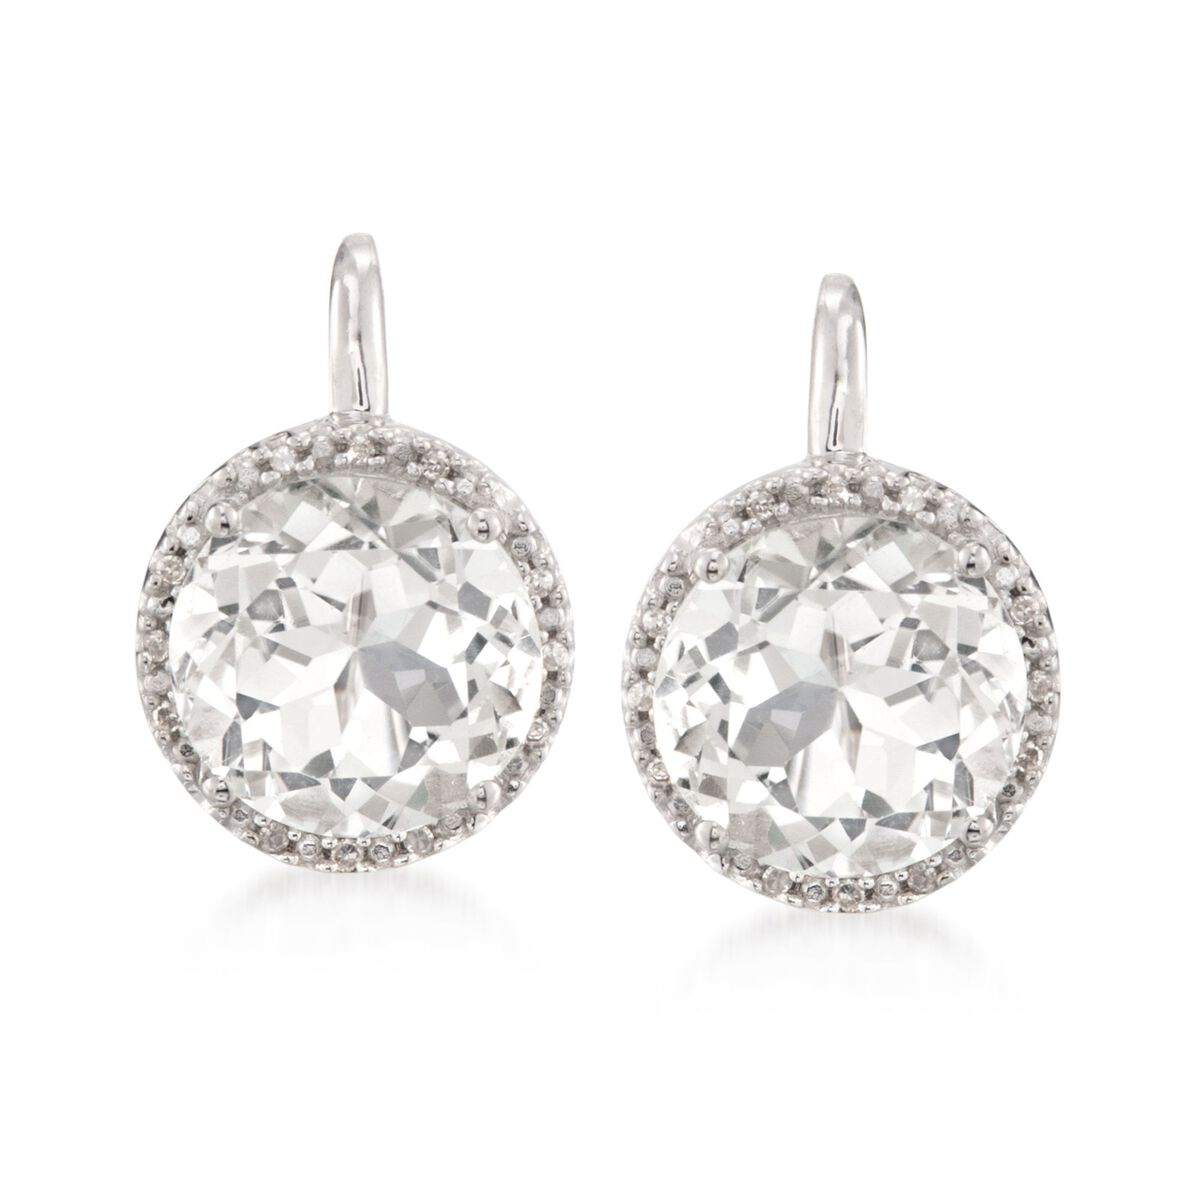 7 75 Ct T W White Topaz Earrings With Diamond Accents In Sterling Silver Ross Simons